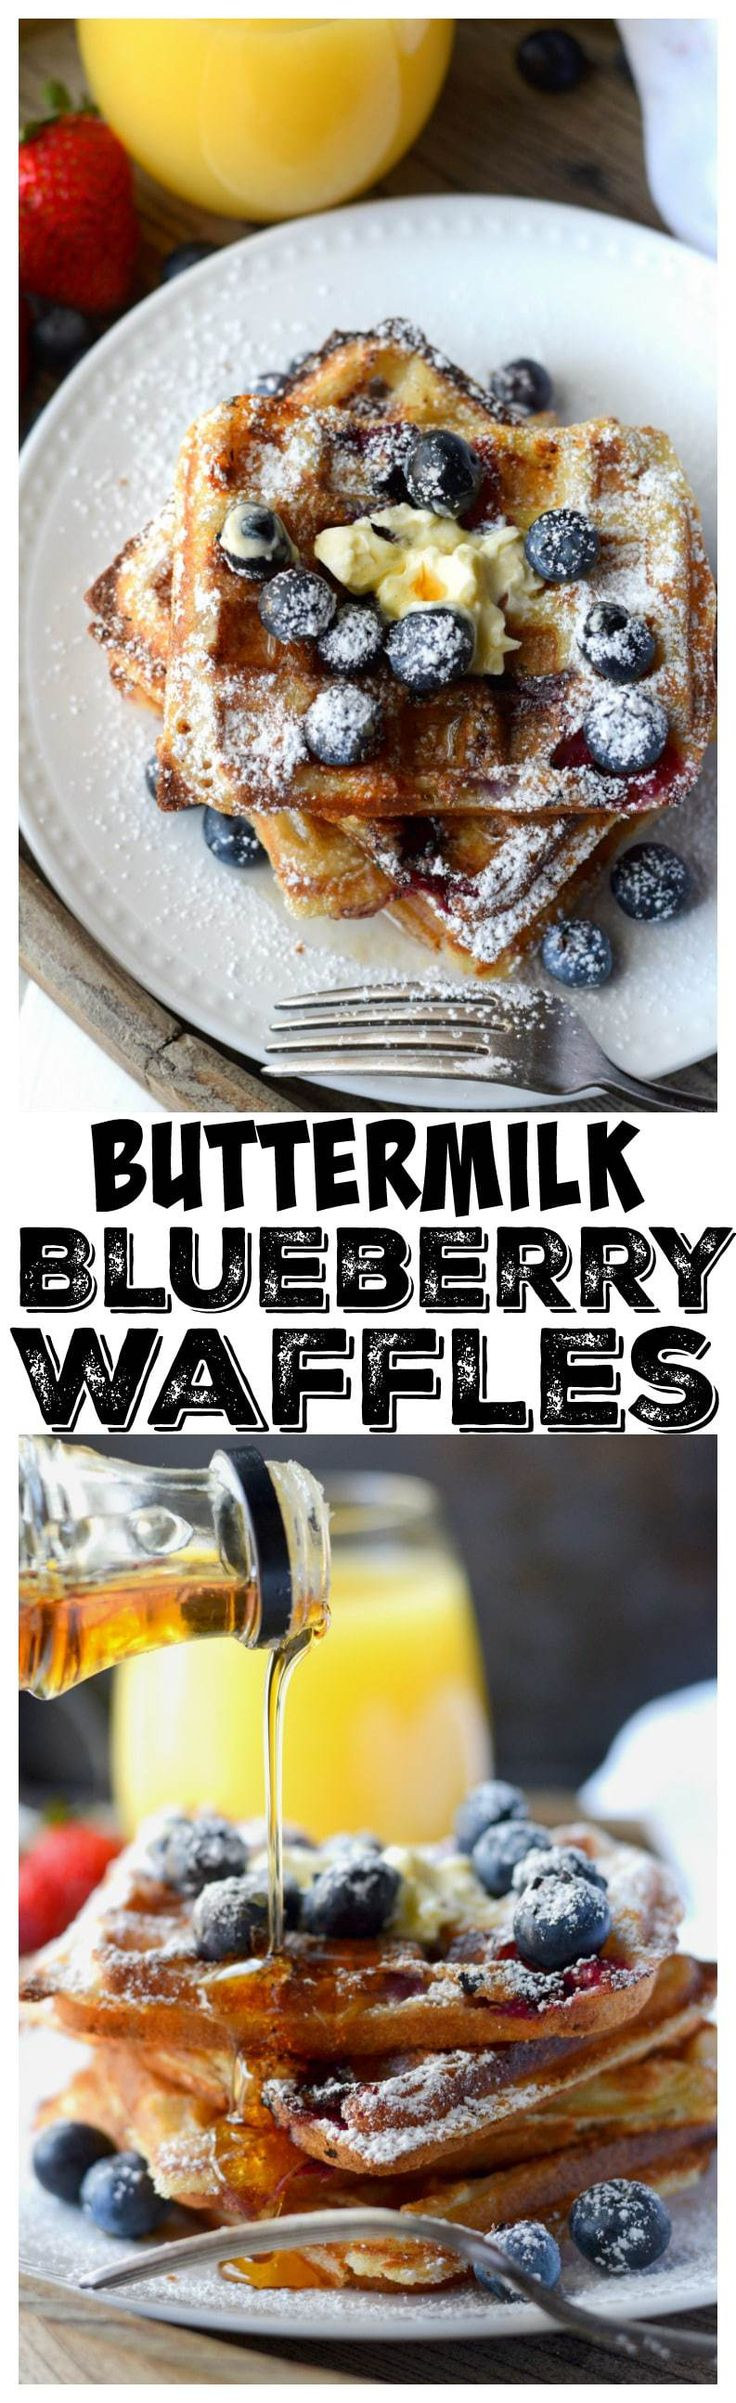 These buttermilk blueberry waffle recipe is light and fluffy on the inside and crispy on the outside, the perfect combination. You need to try these!